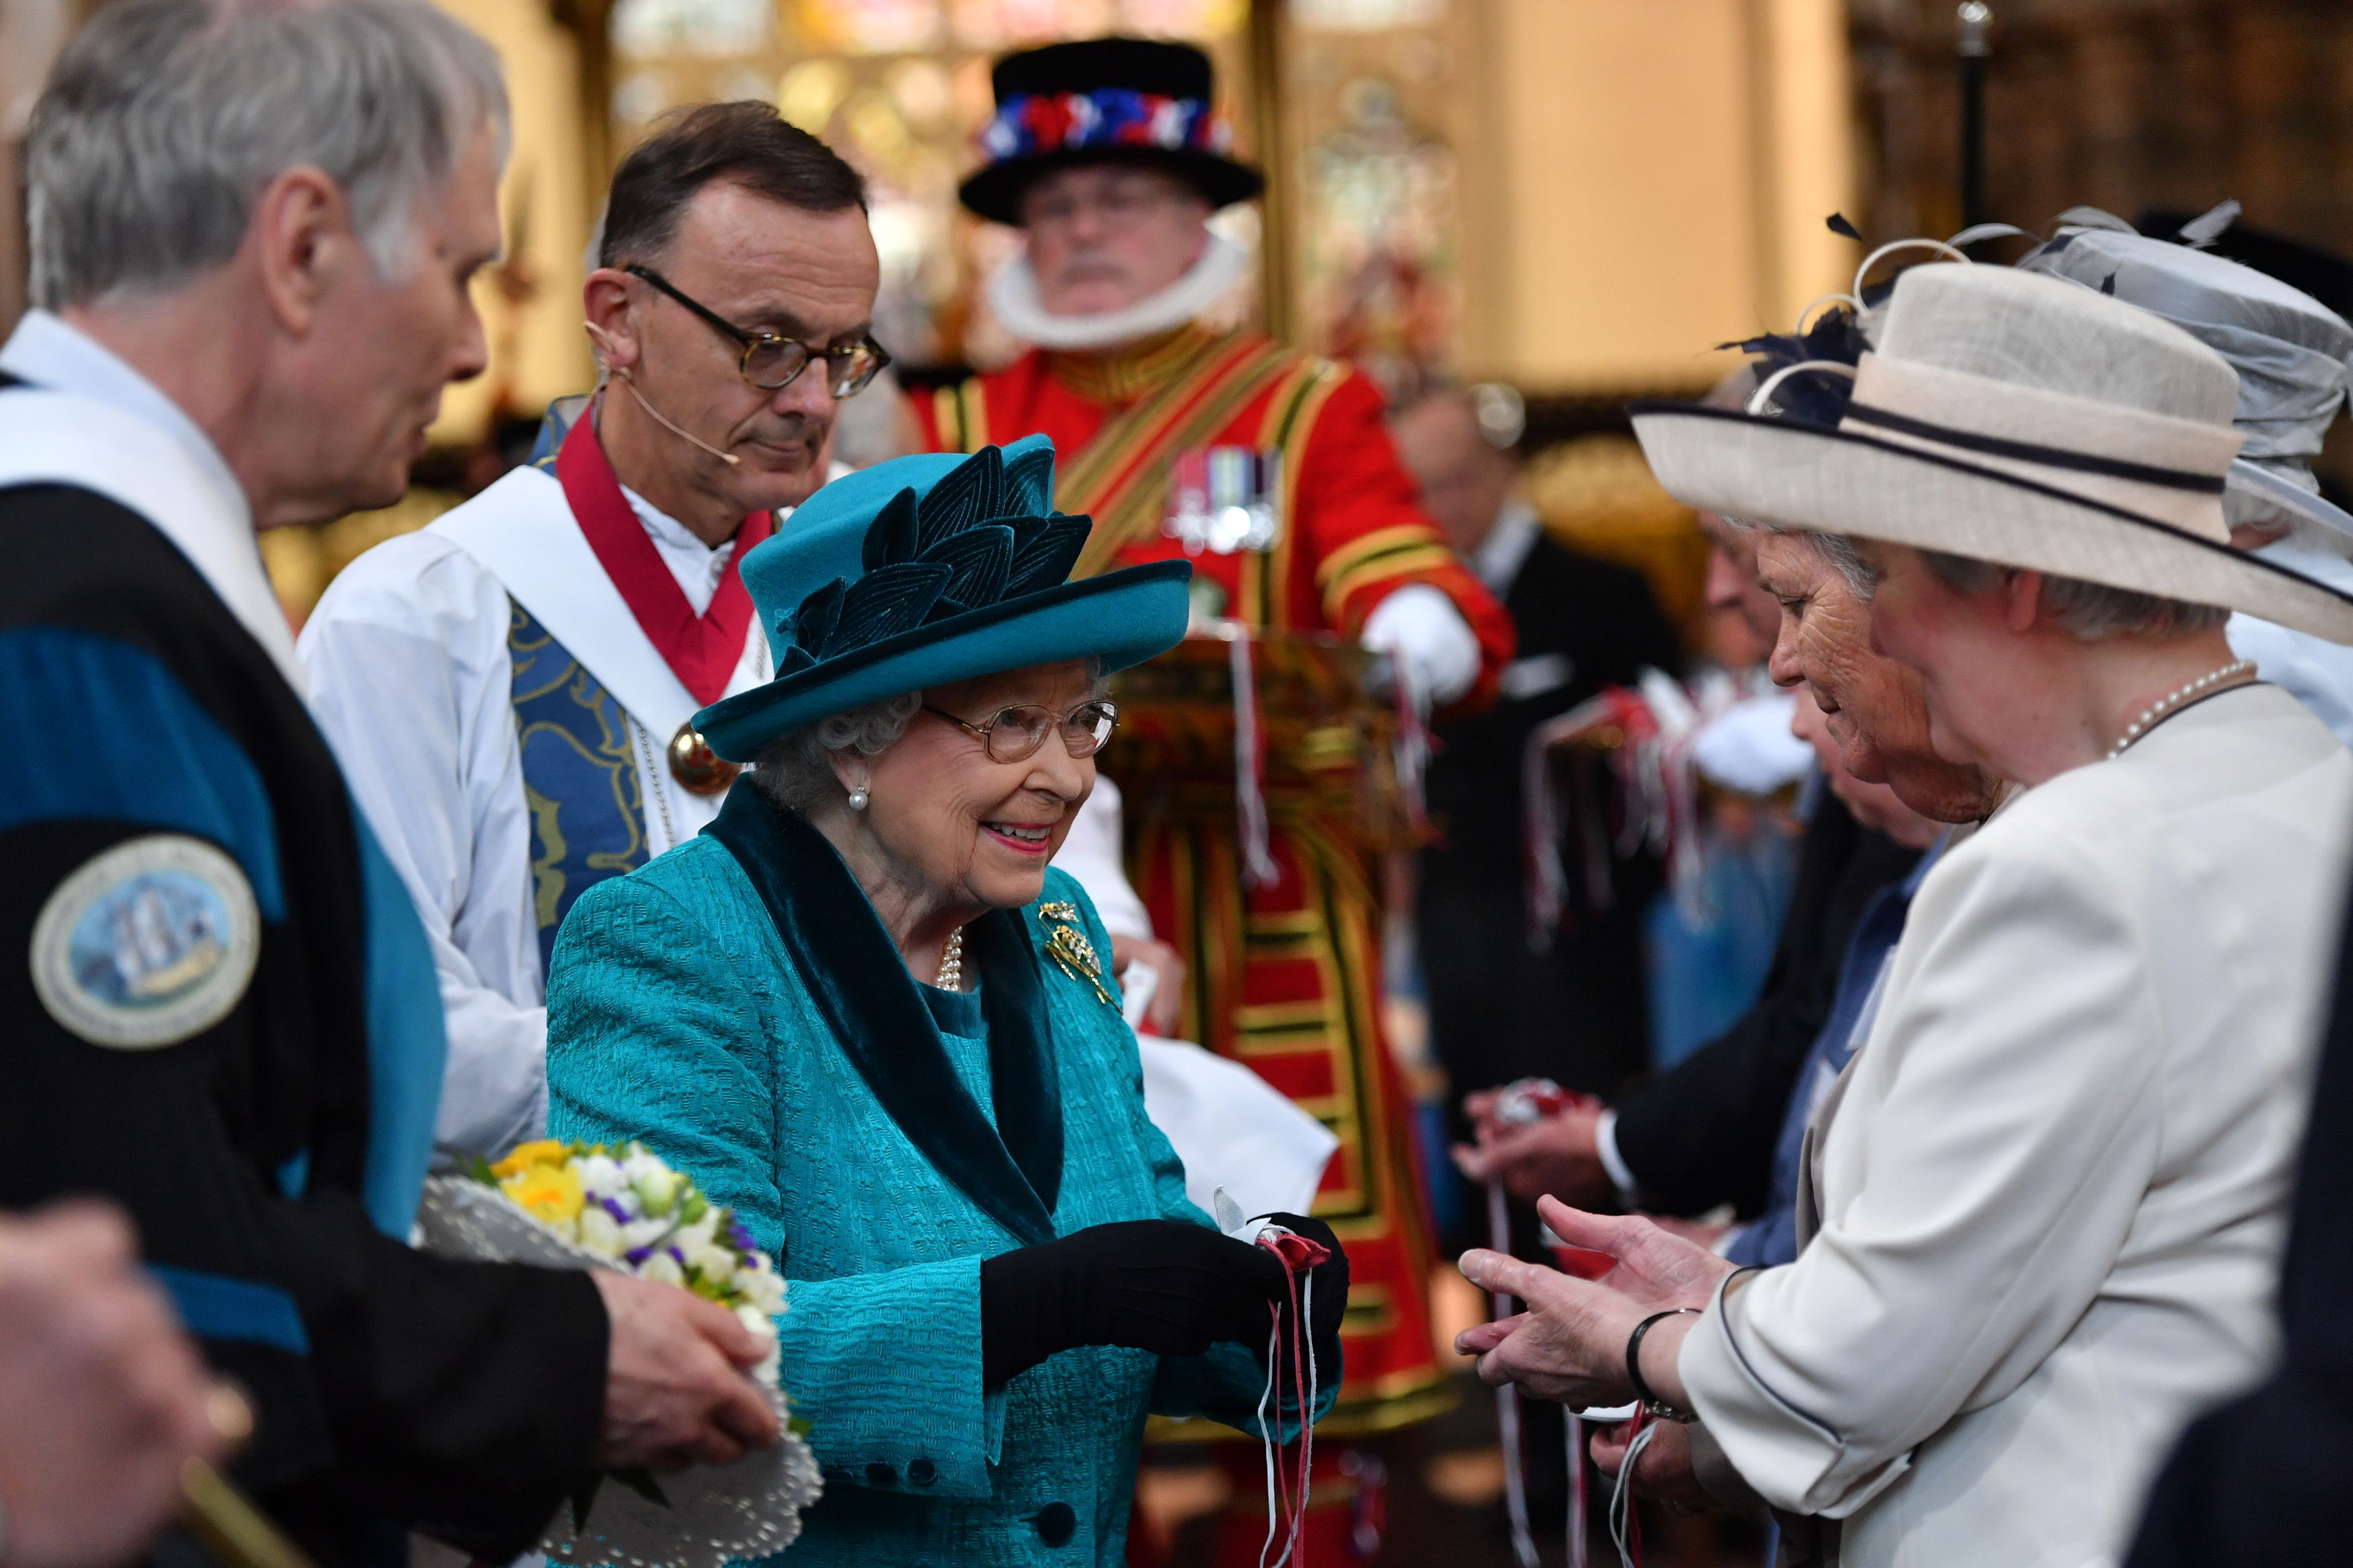 The Queen distributes Maundy Money at Leicester Cathedral